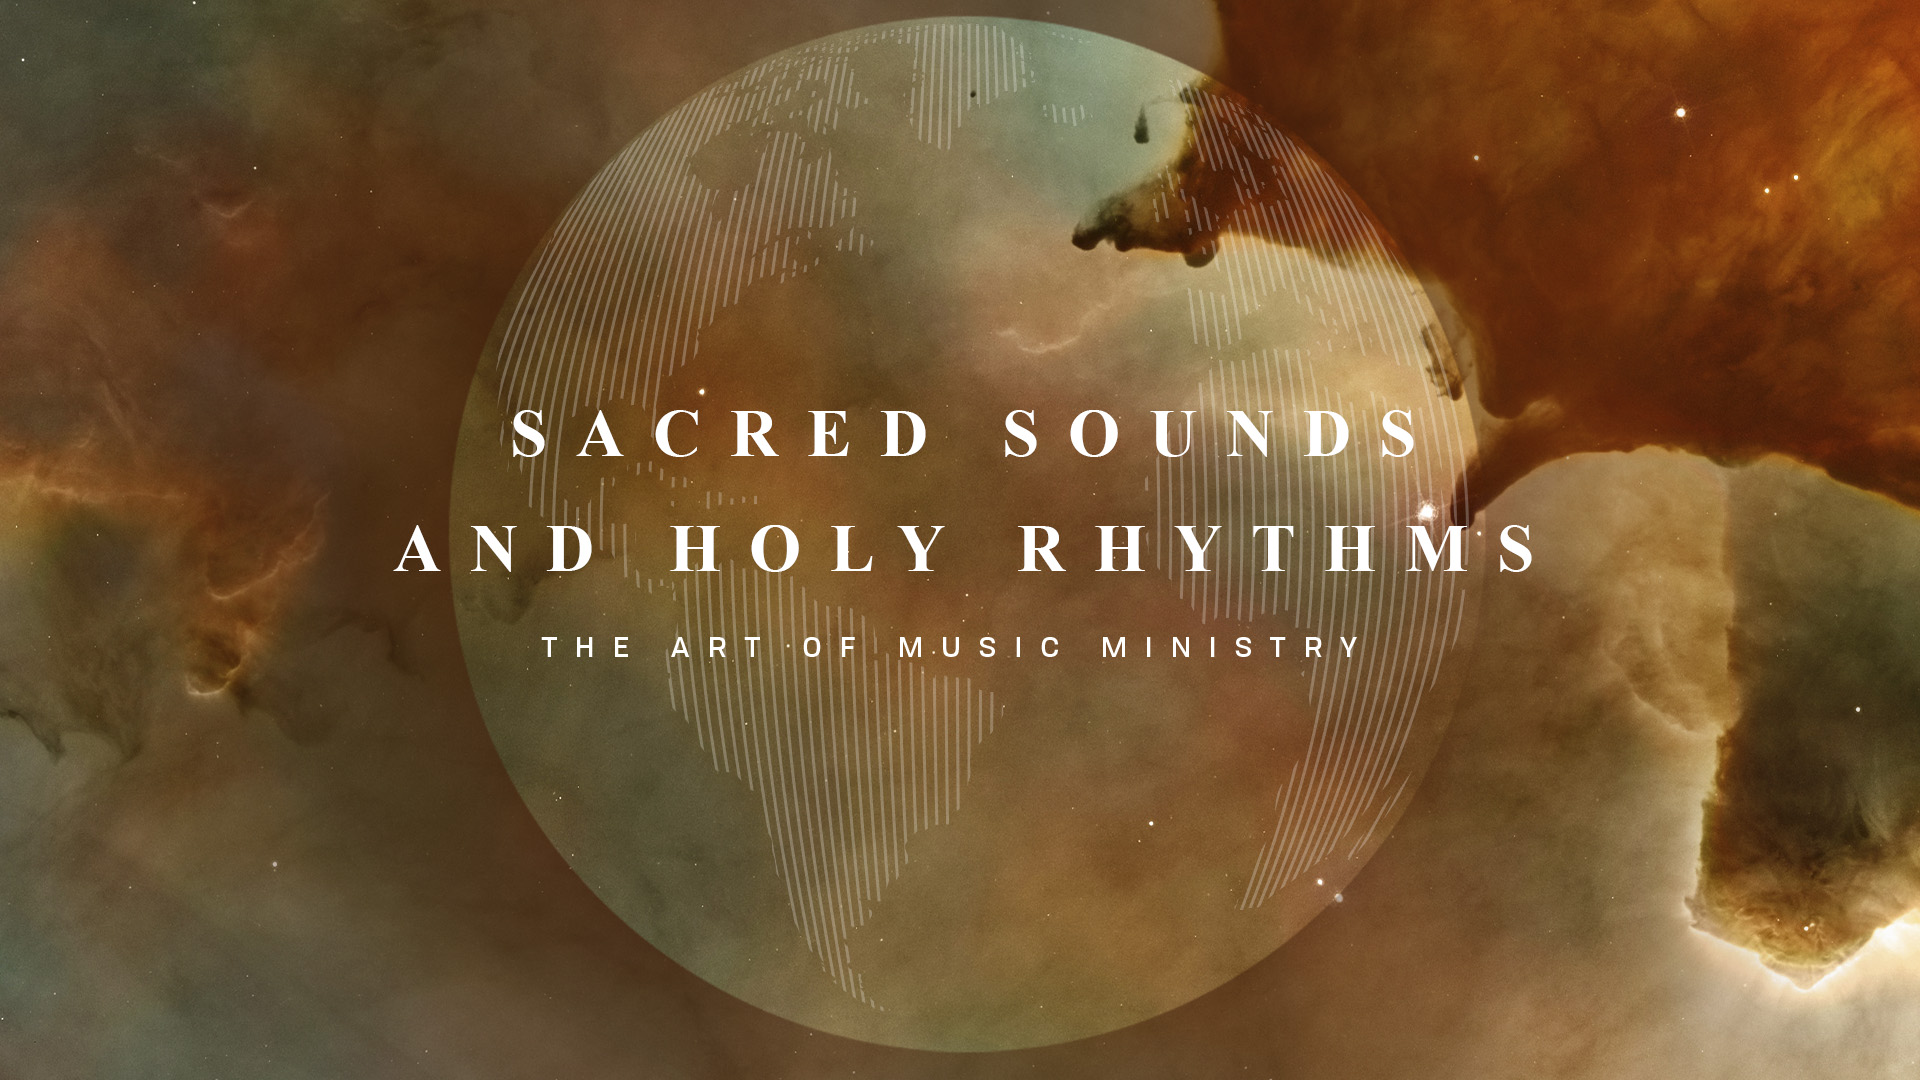 Sacred Sounds & Holy Rhythms